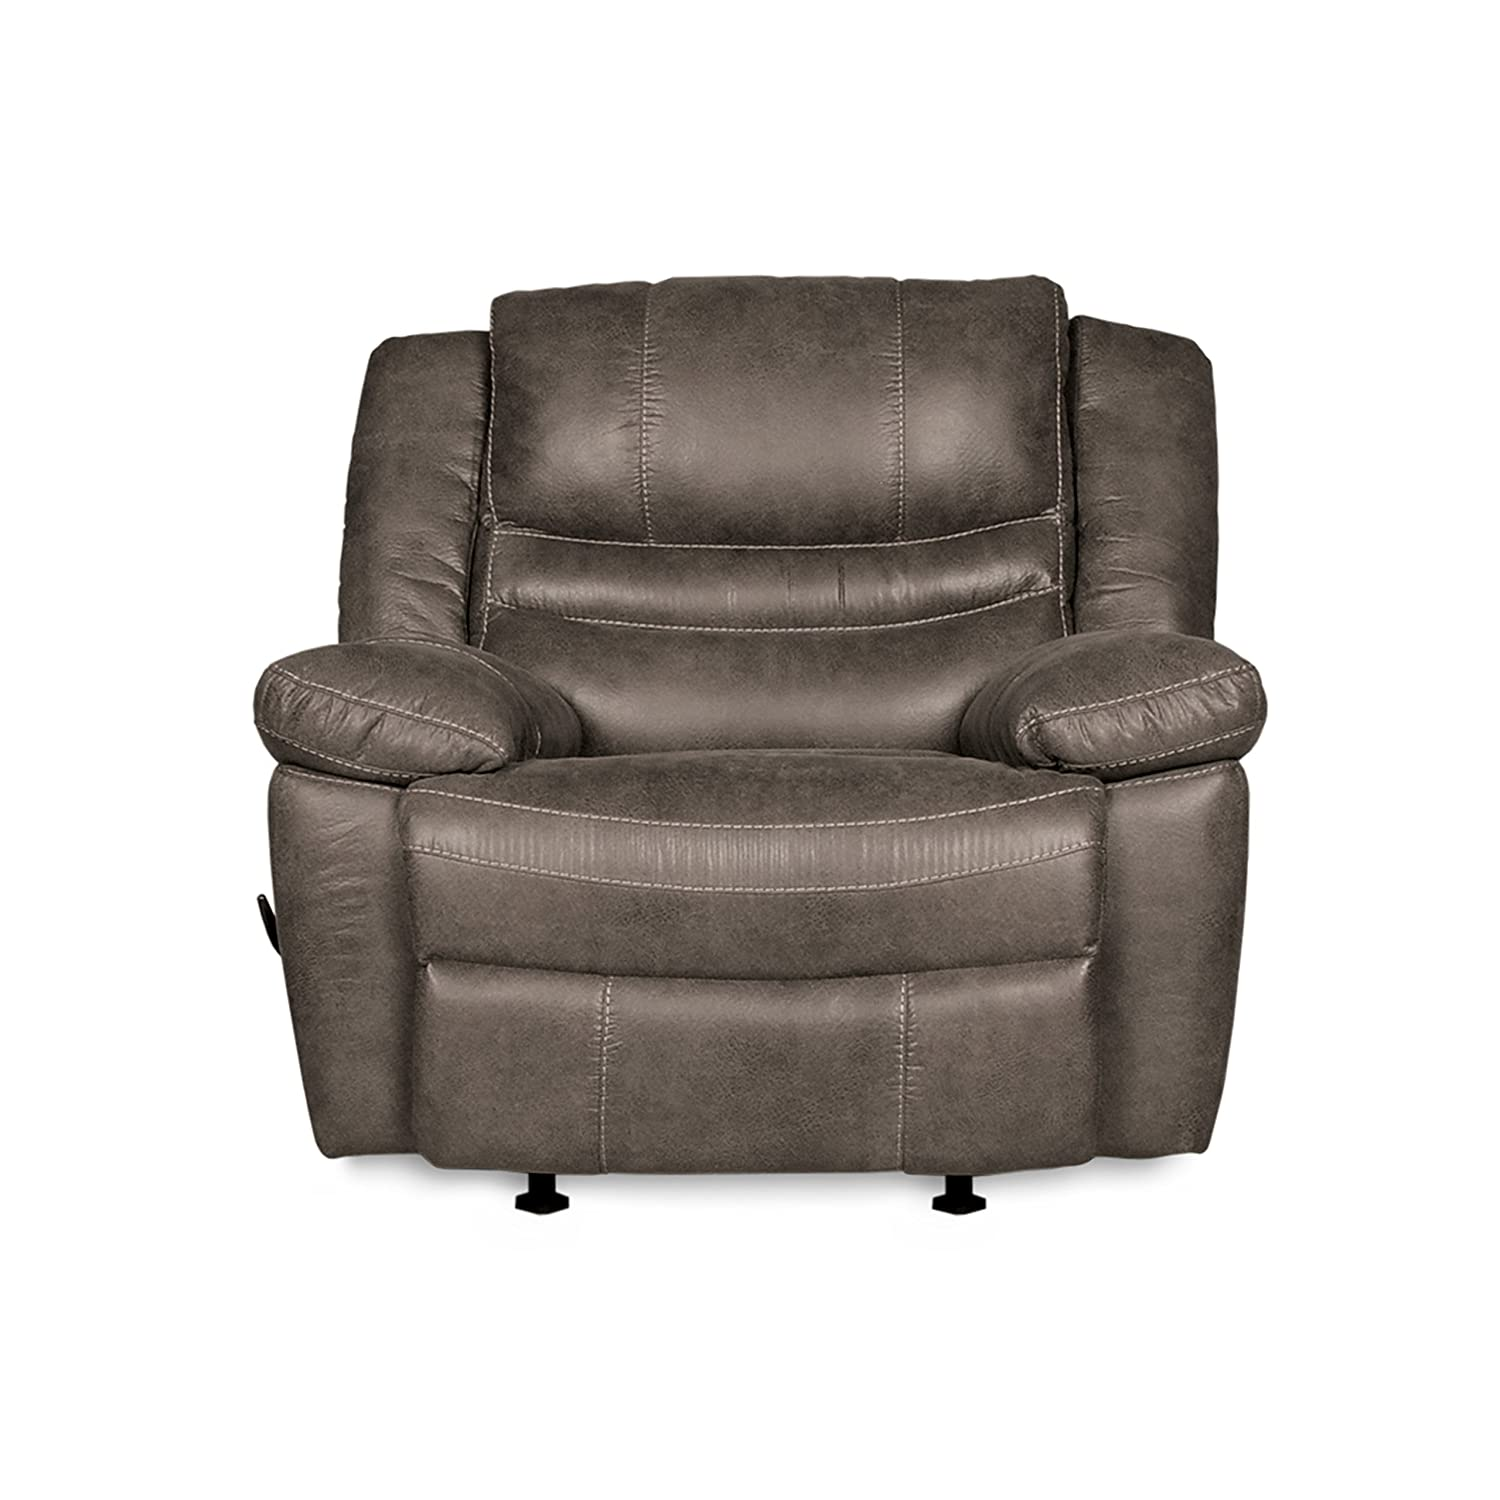 RevoluXion Mason Rocker Recliner Chair with Three Positions & Lumbar Support, Durable Faux Leather with Curved Shape Promises Generous Comfort, Quick & Easy to Assemble (Ash) 2400